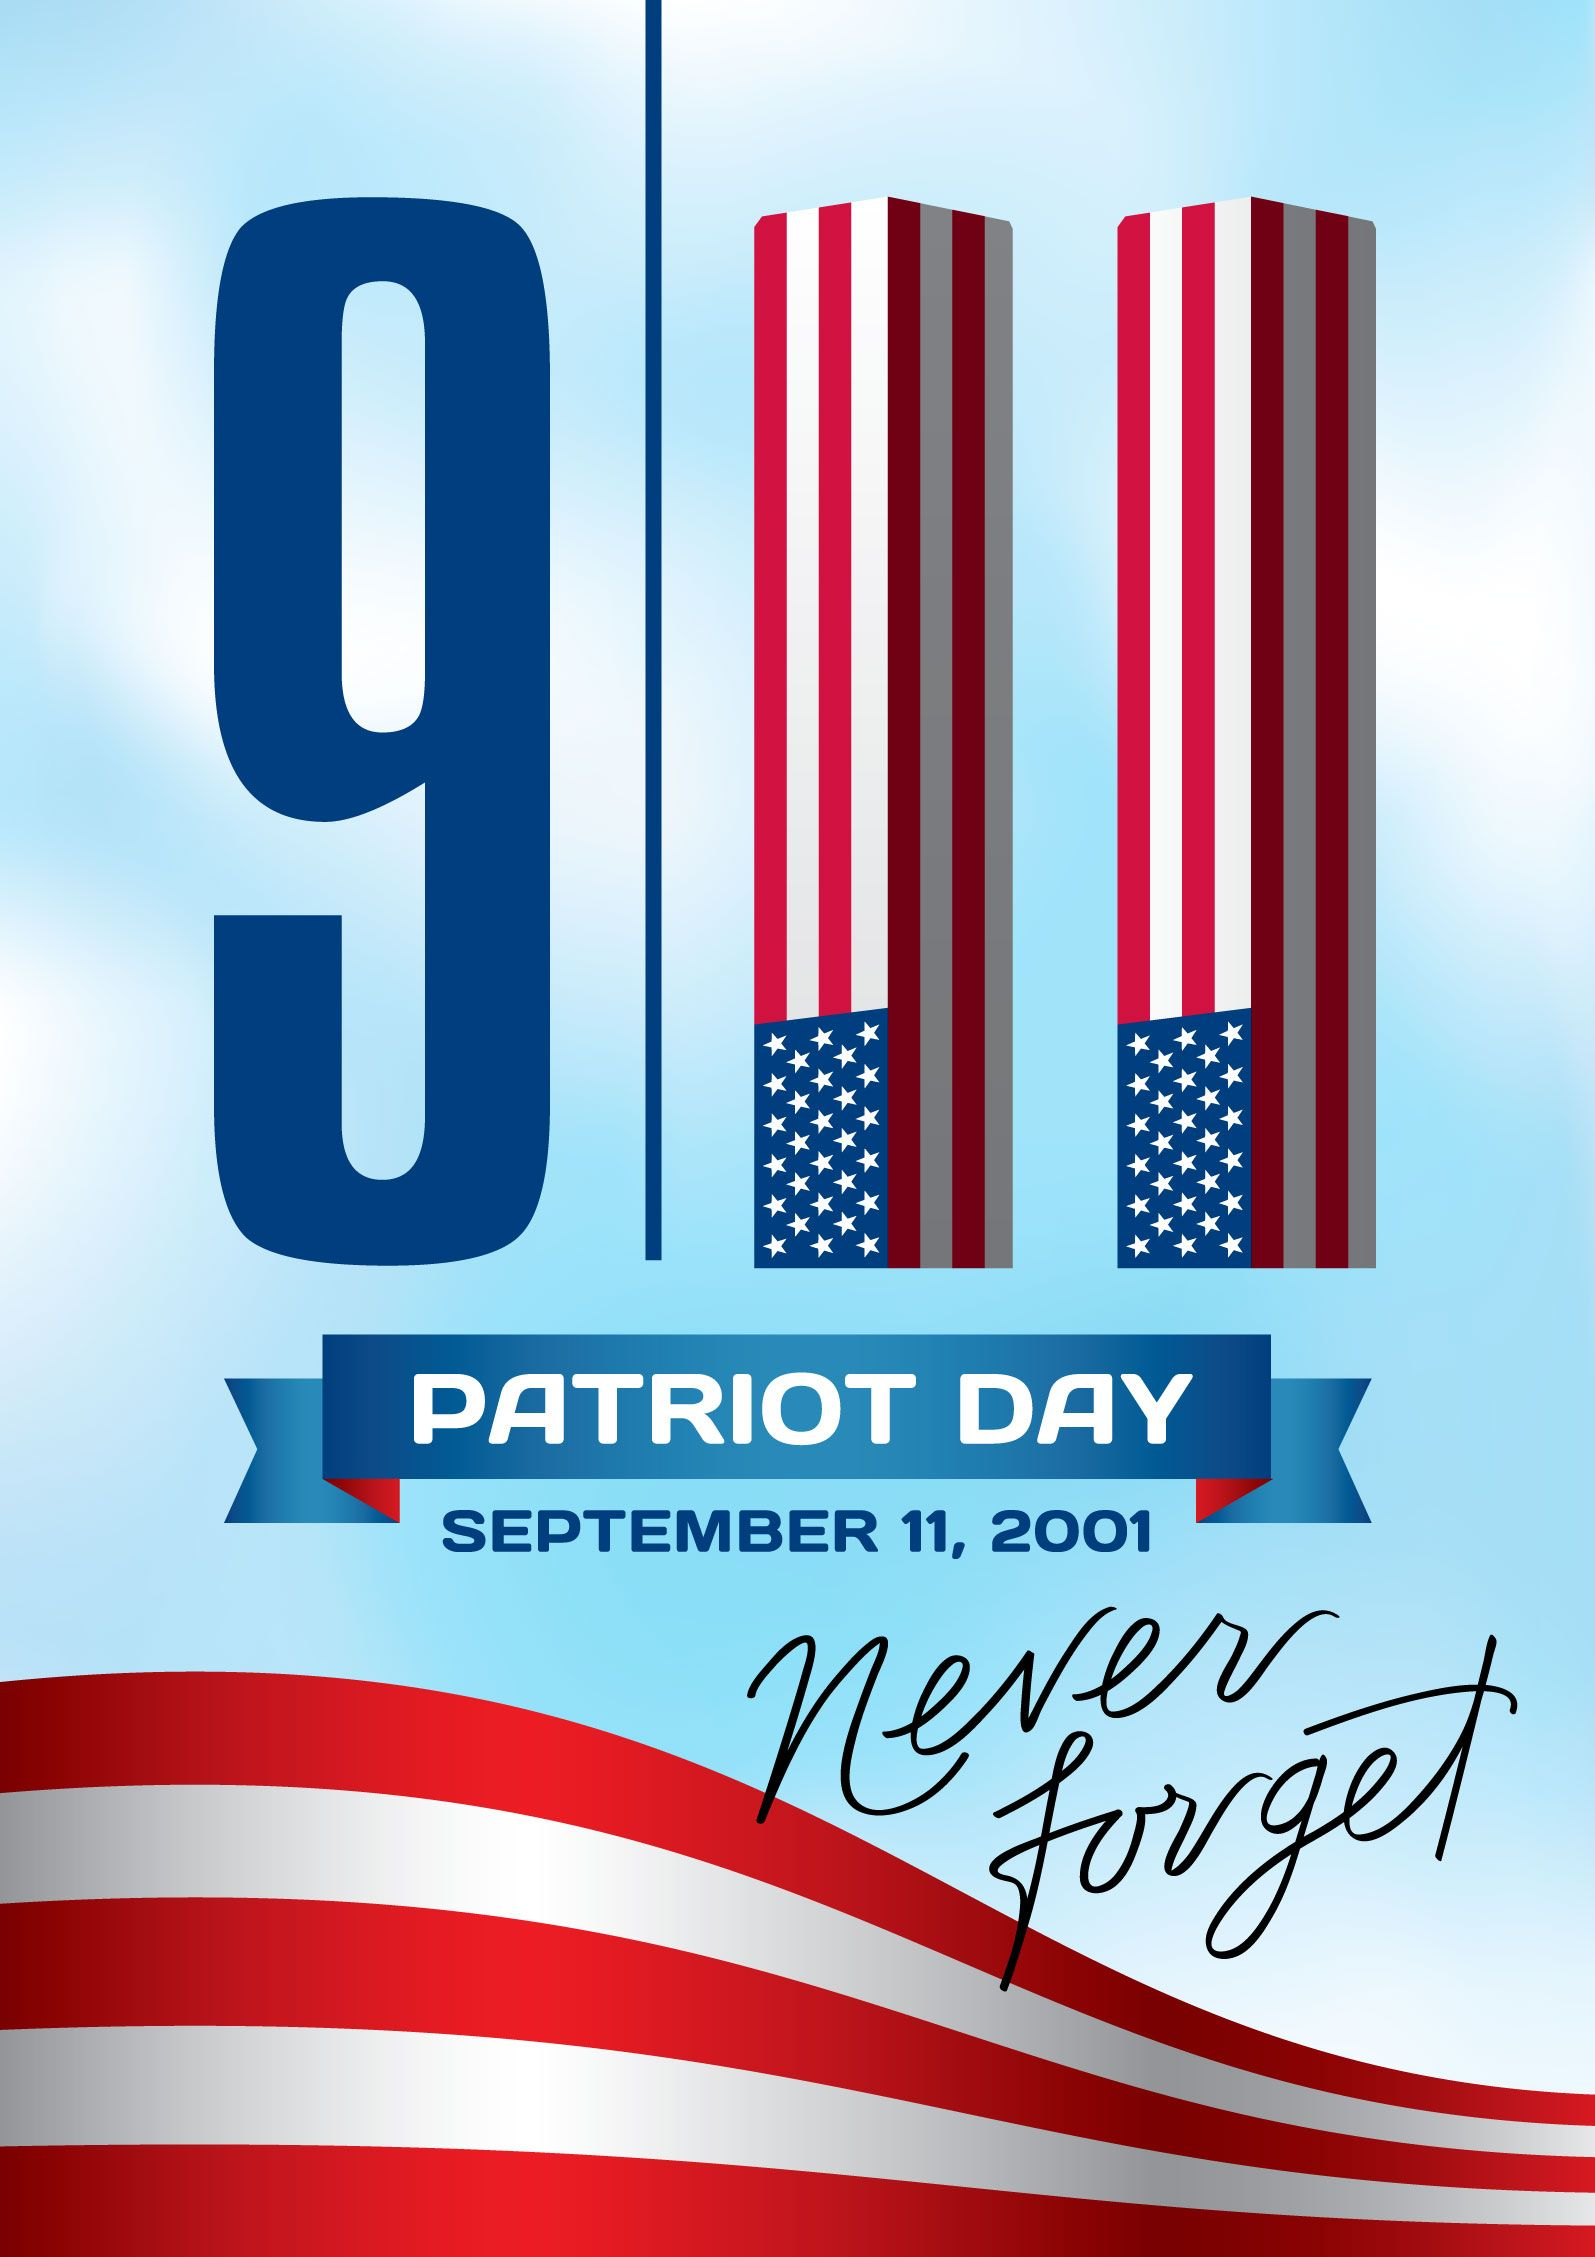 Patriot Day Honor The Victims Of Sept 11 2001 To Aug 27 2017 Remembering September 11th September 11 Patriots Day